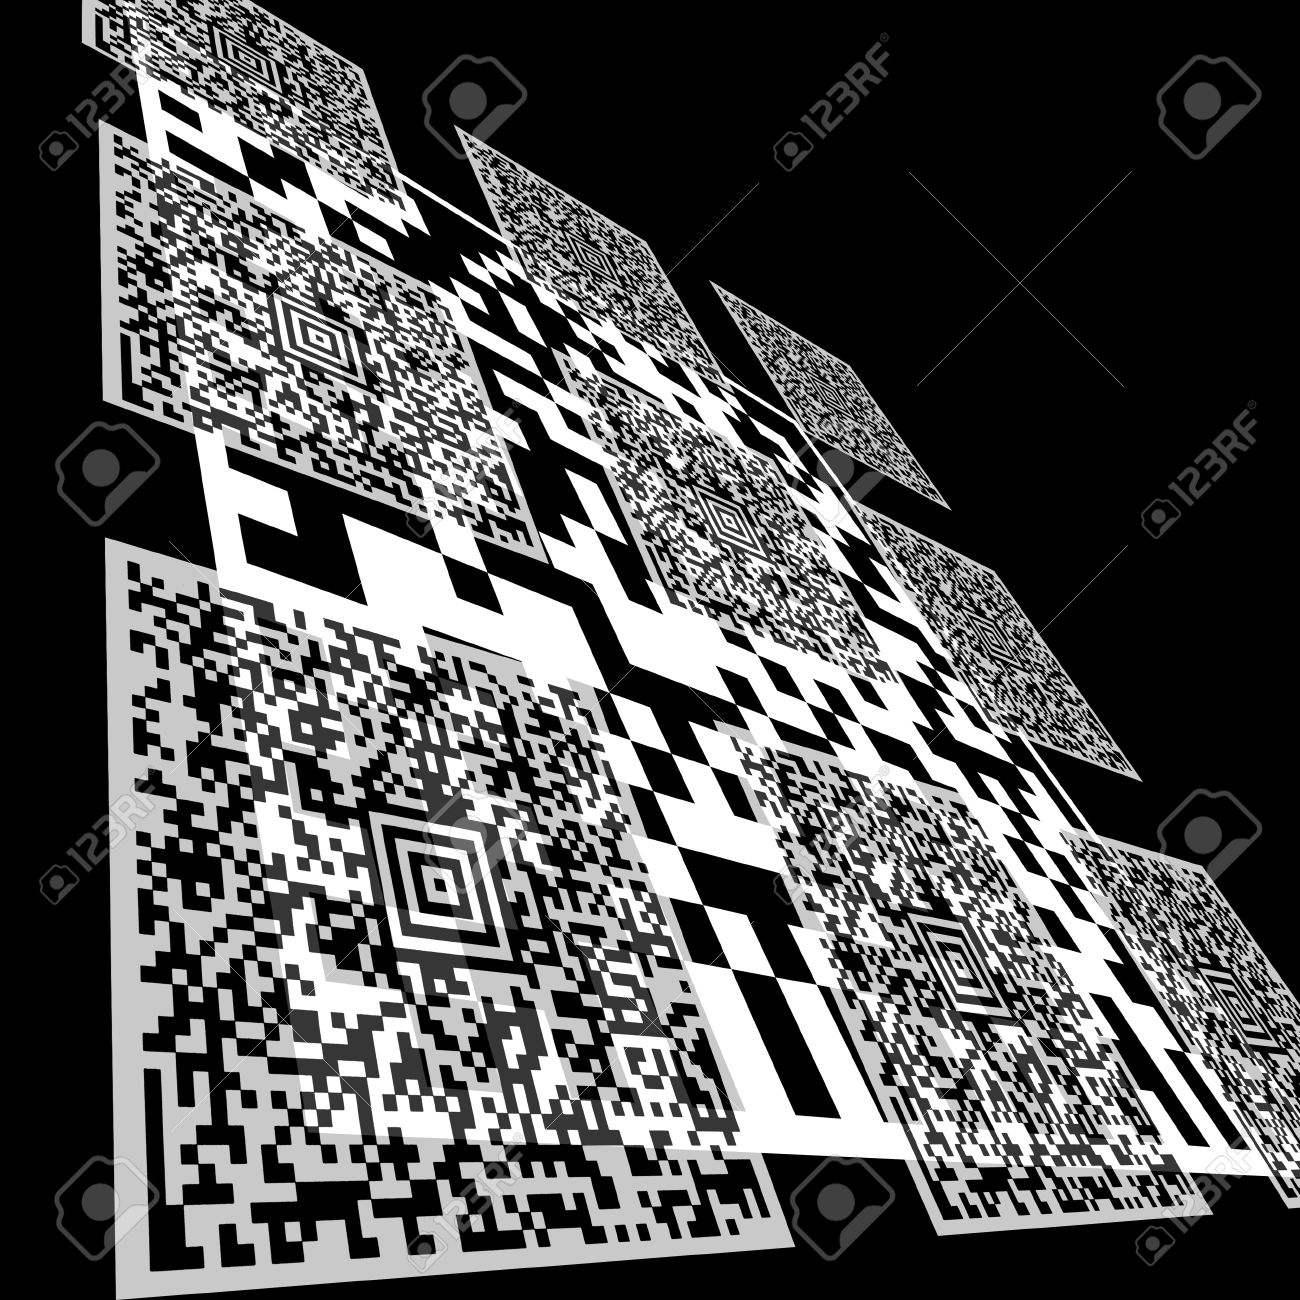 Background composed of Aztec Code and DataMatrix Code barcodes